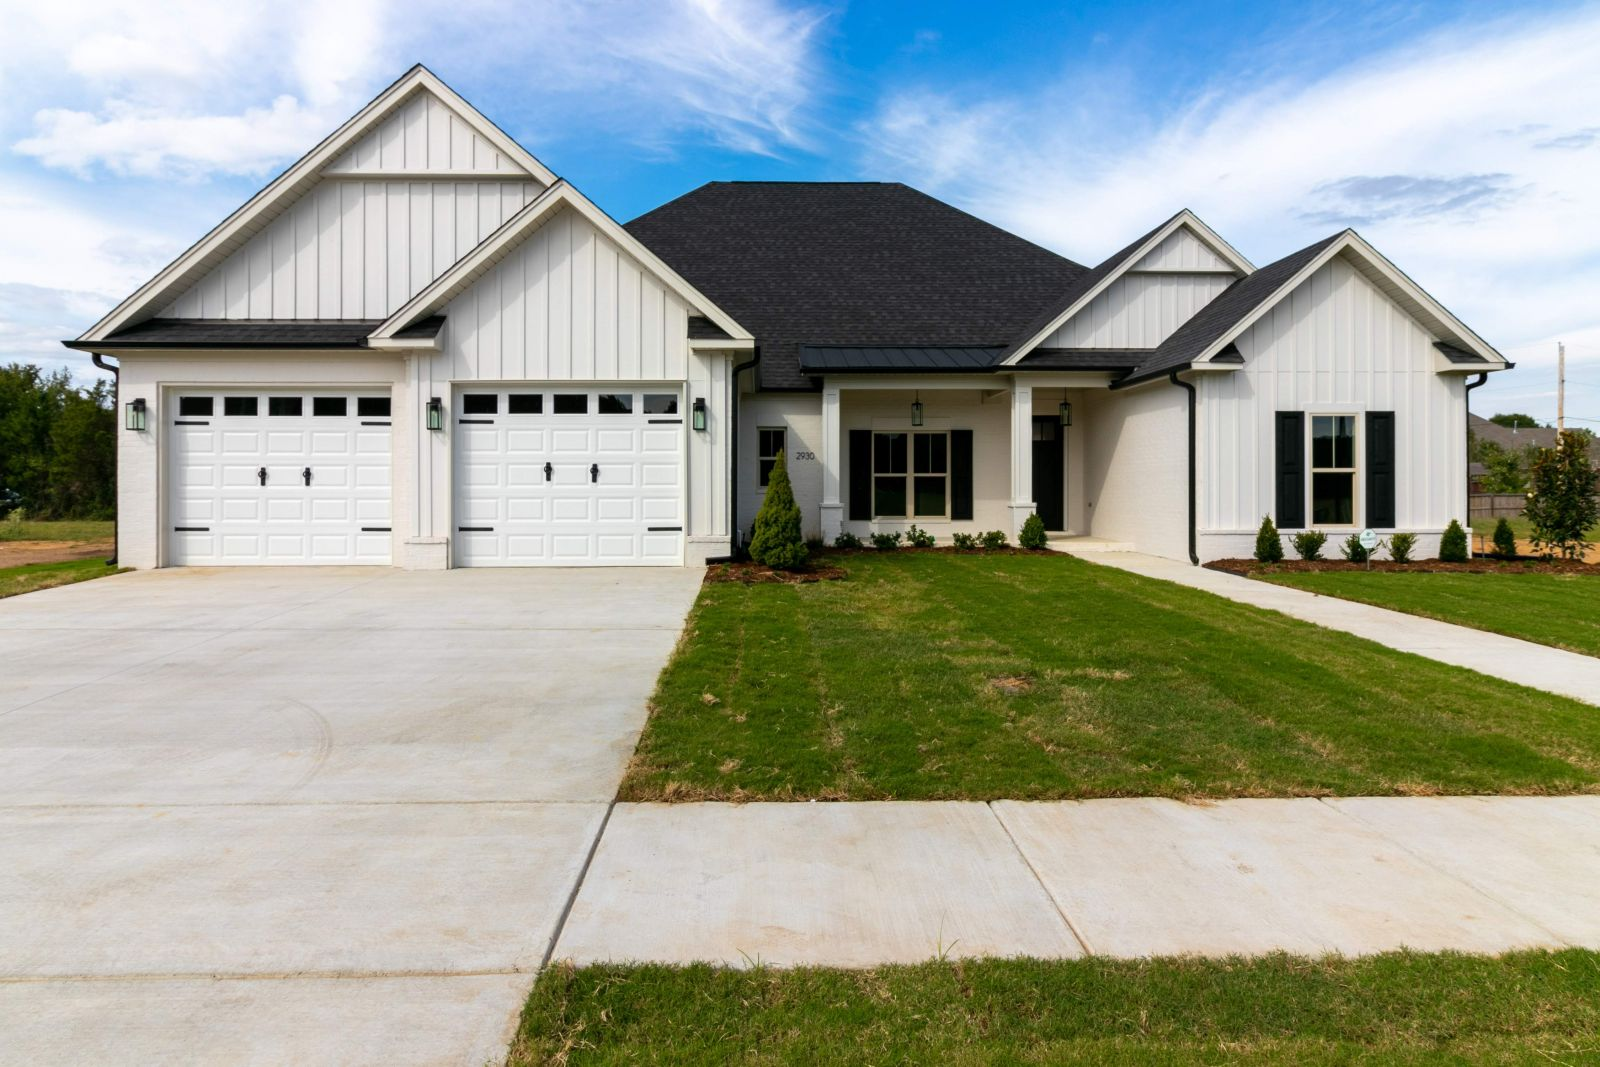 Home for sale that is under construction in Conway Arkansas